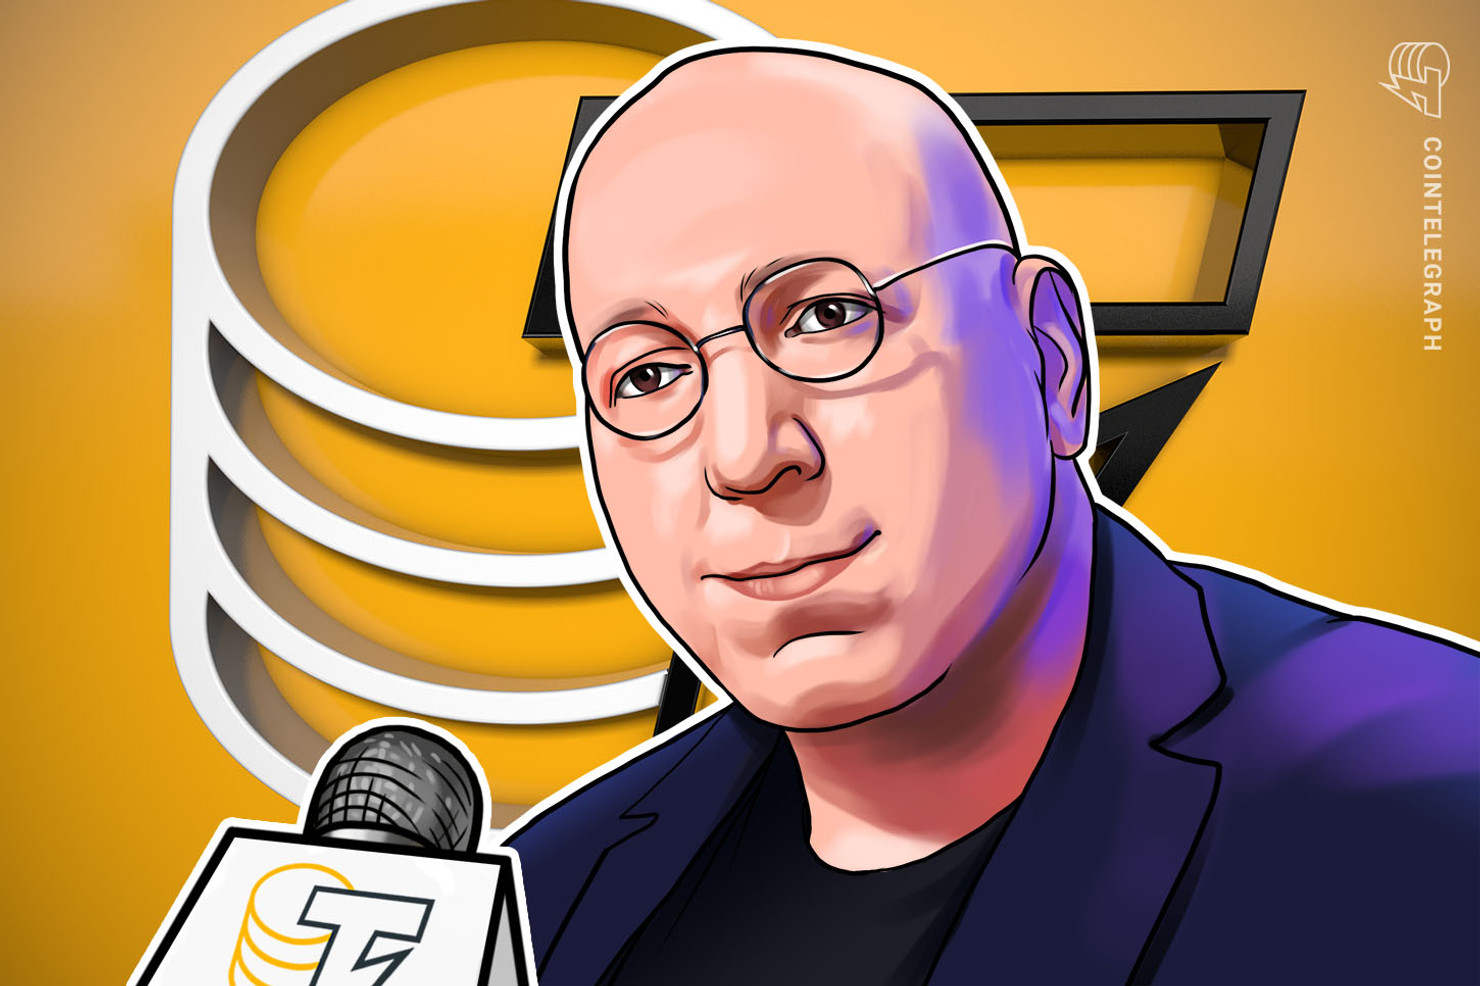 Jeffrey Wernick on Cointelegraph China's Focus